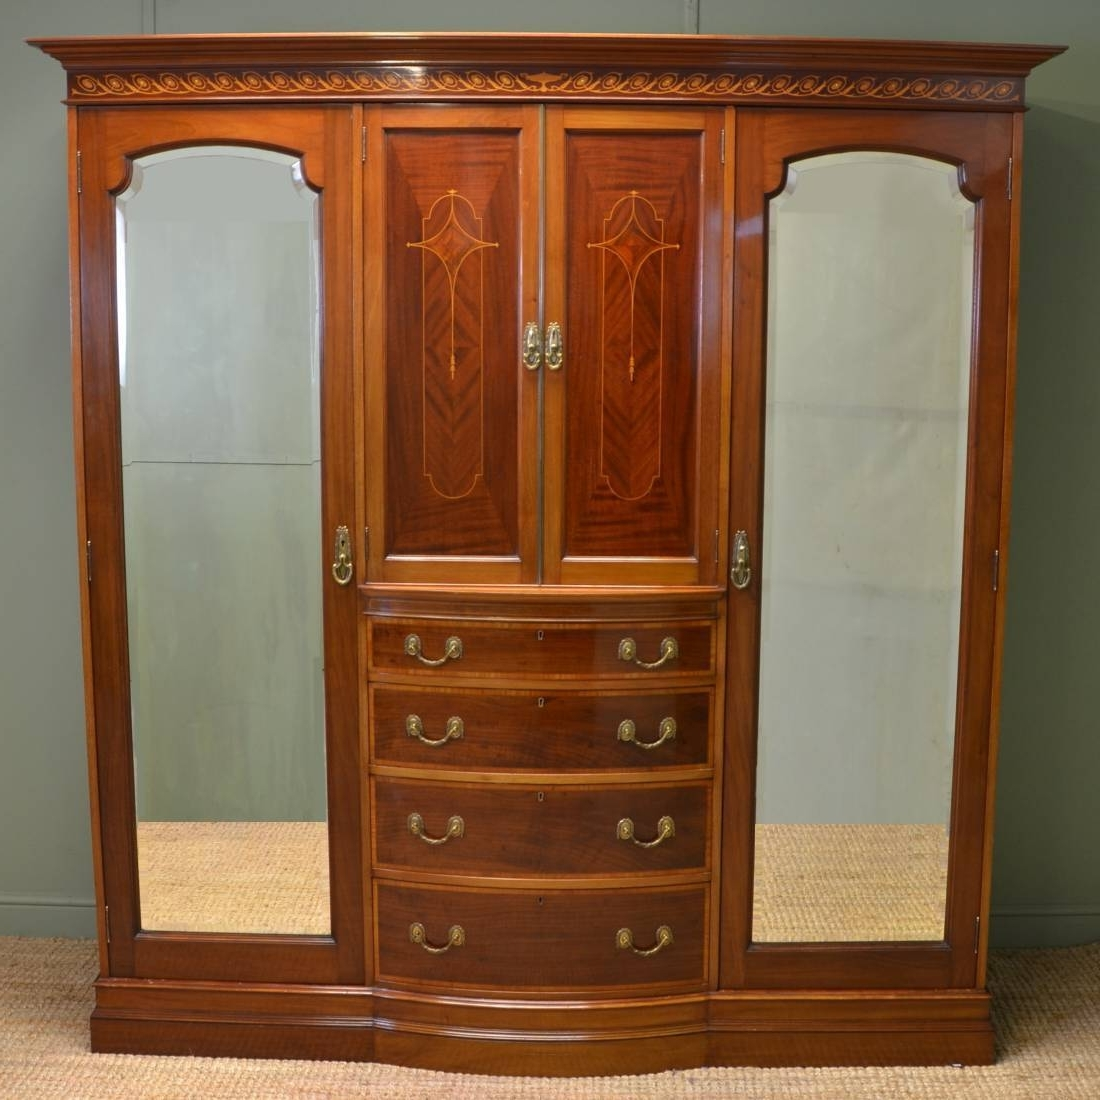 Latest Antique Triple Wardrobes Within Spectacular Inlaid Mahogany Antique Victorian Triple Wardrobe (View 7 of 15)